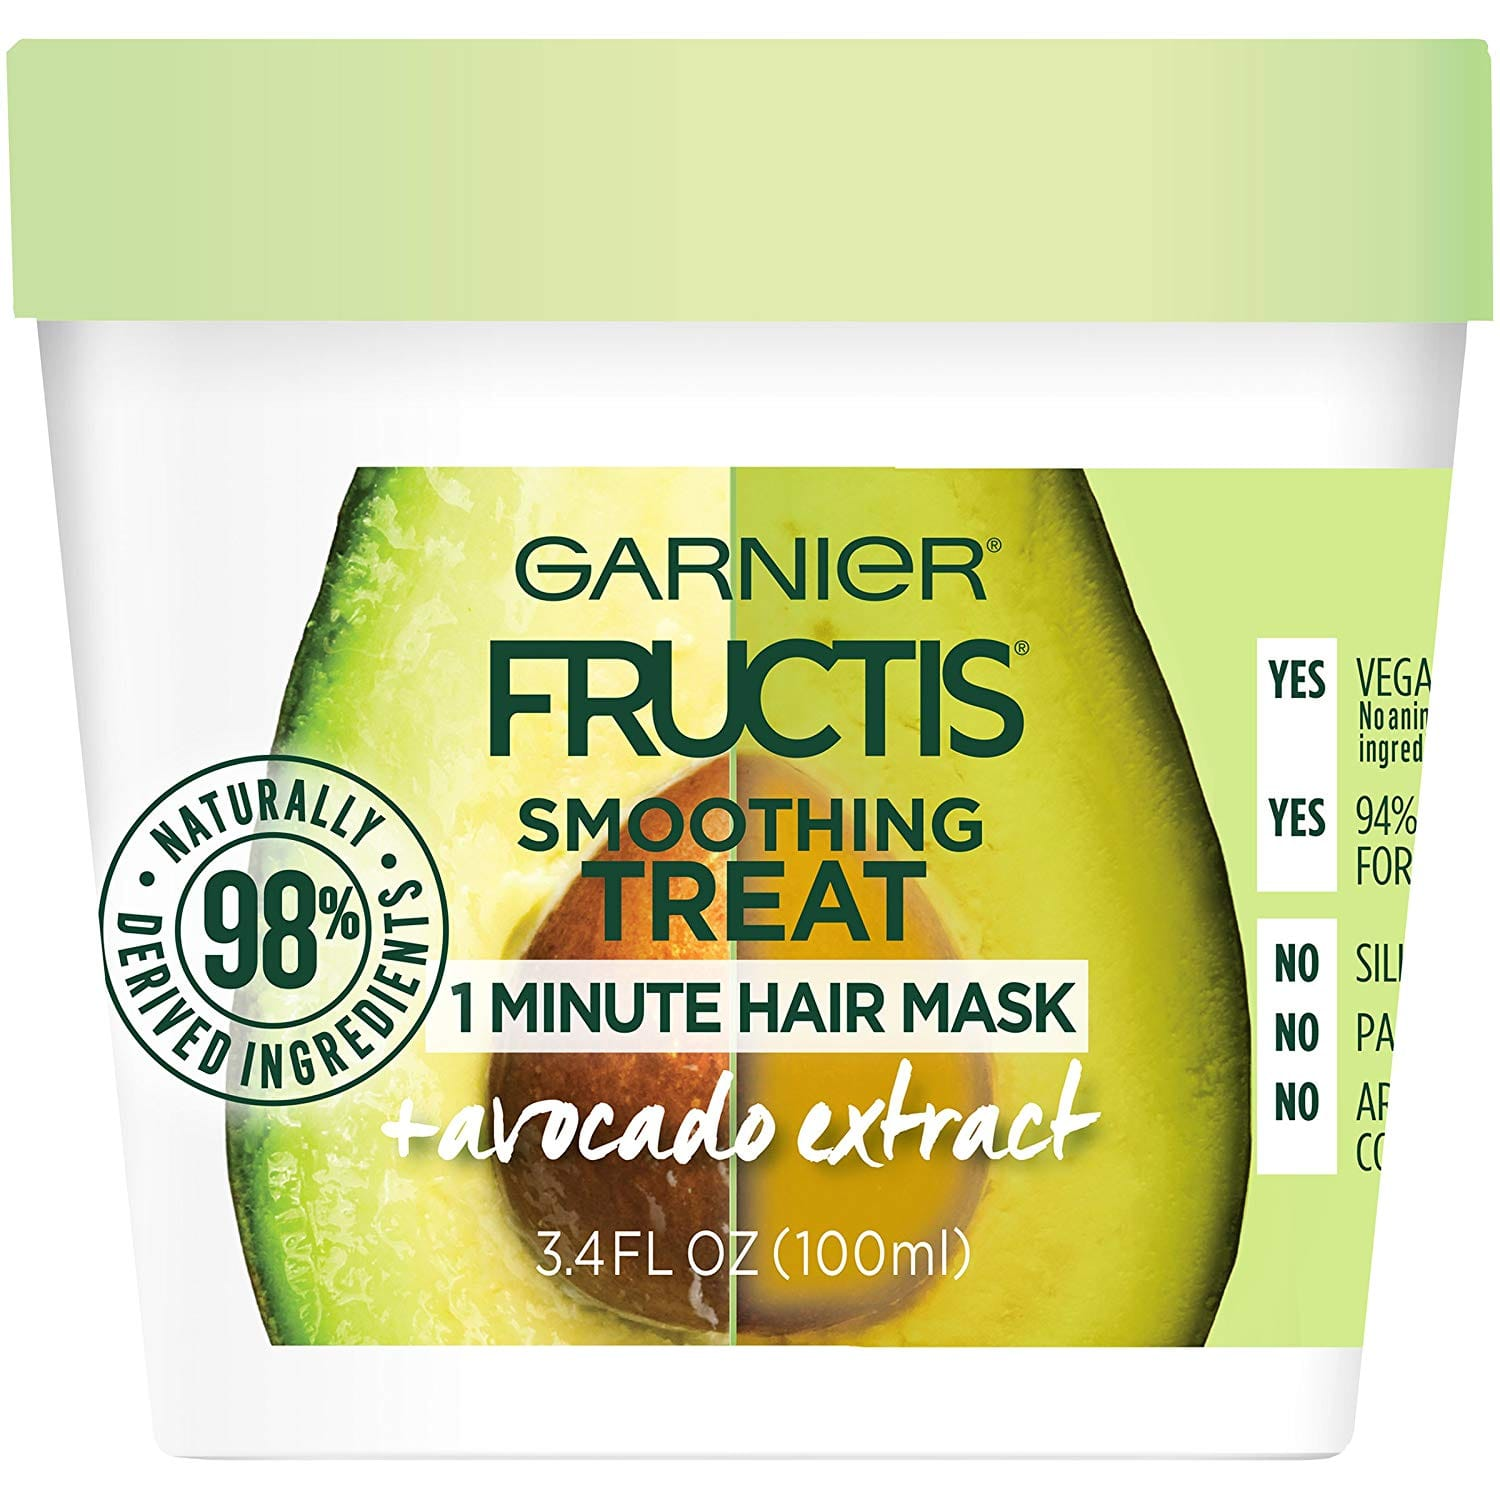 3.4-Oz Garnier Fructis 1 Minute Hair Conditioner Mask w/ Avocado Extract $1.90 w/ S&S + Free S&H